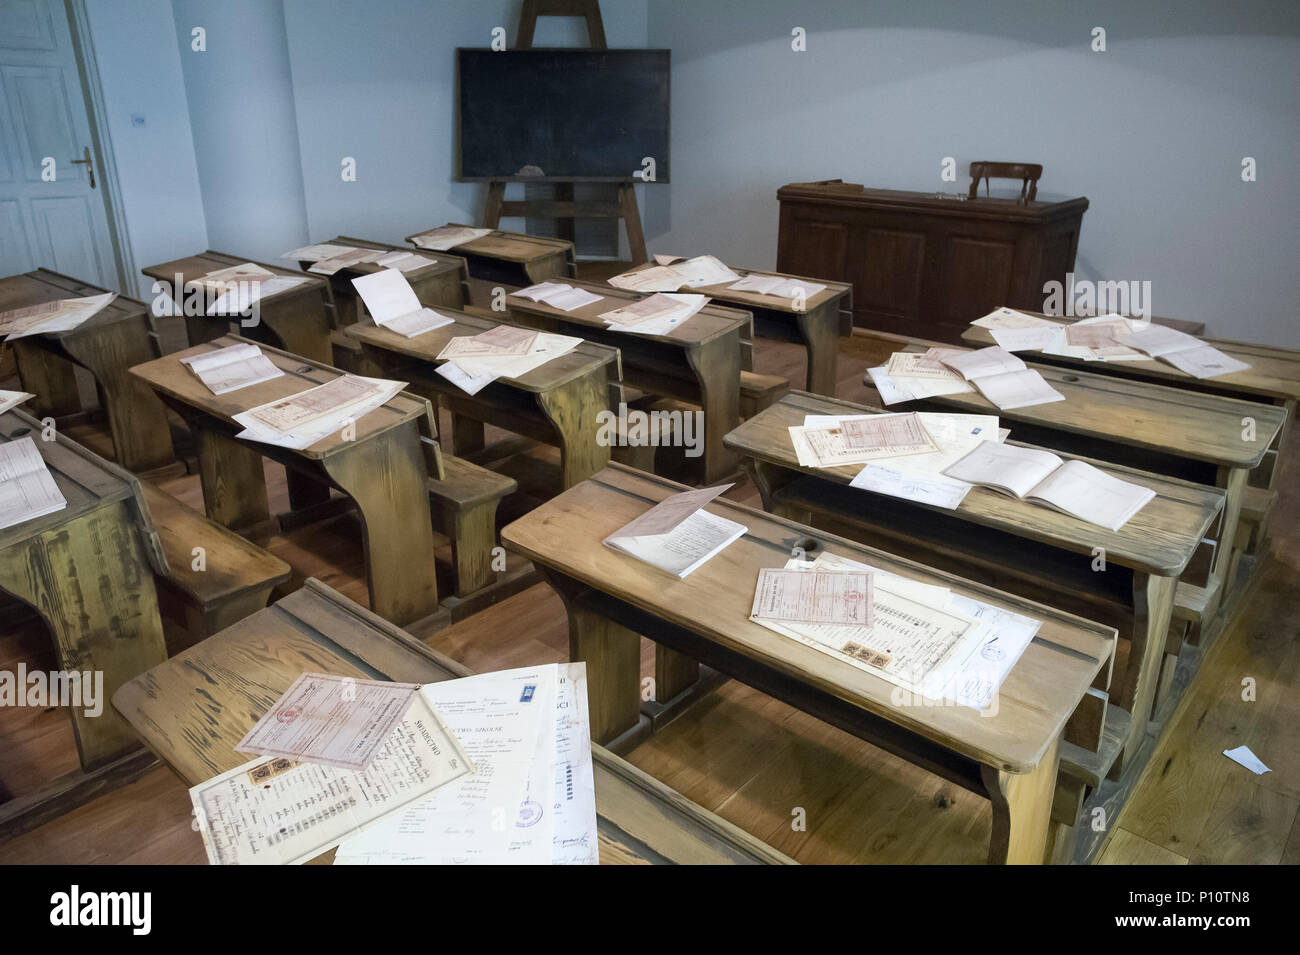 Pre war Polish school class as a part of exhibion in Museum of the Second World War in Gdansk, Poland. January 28th 2017 © Wojciech Strozyk / Alamy St - Stock Image